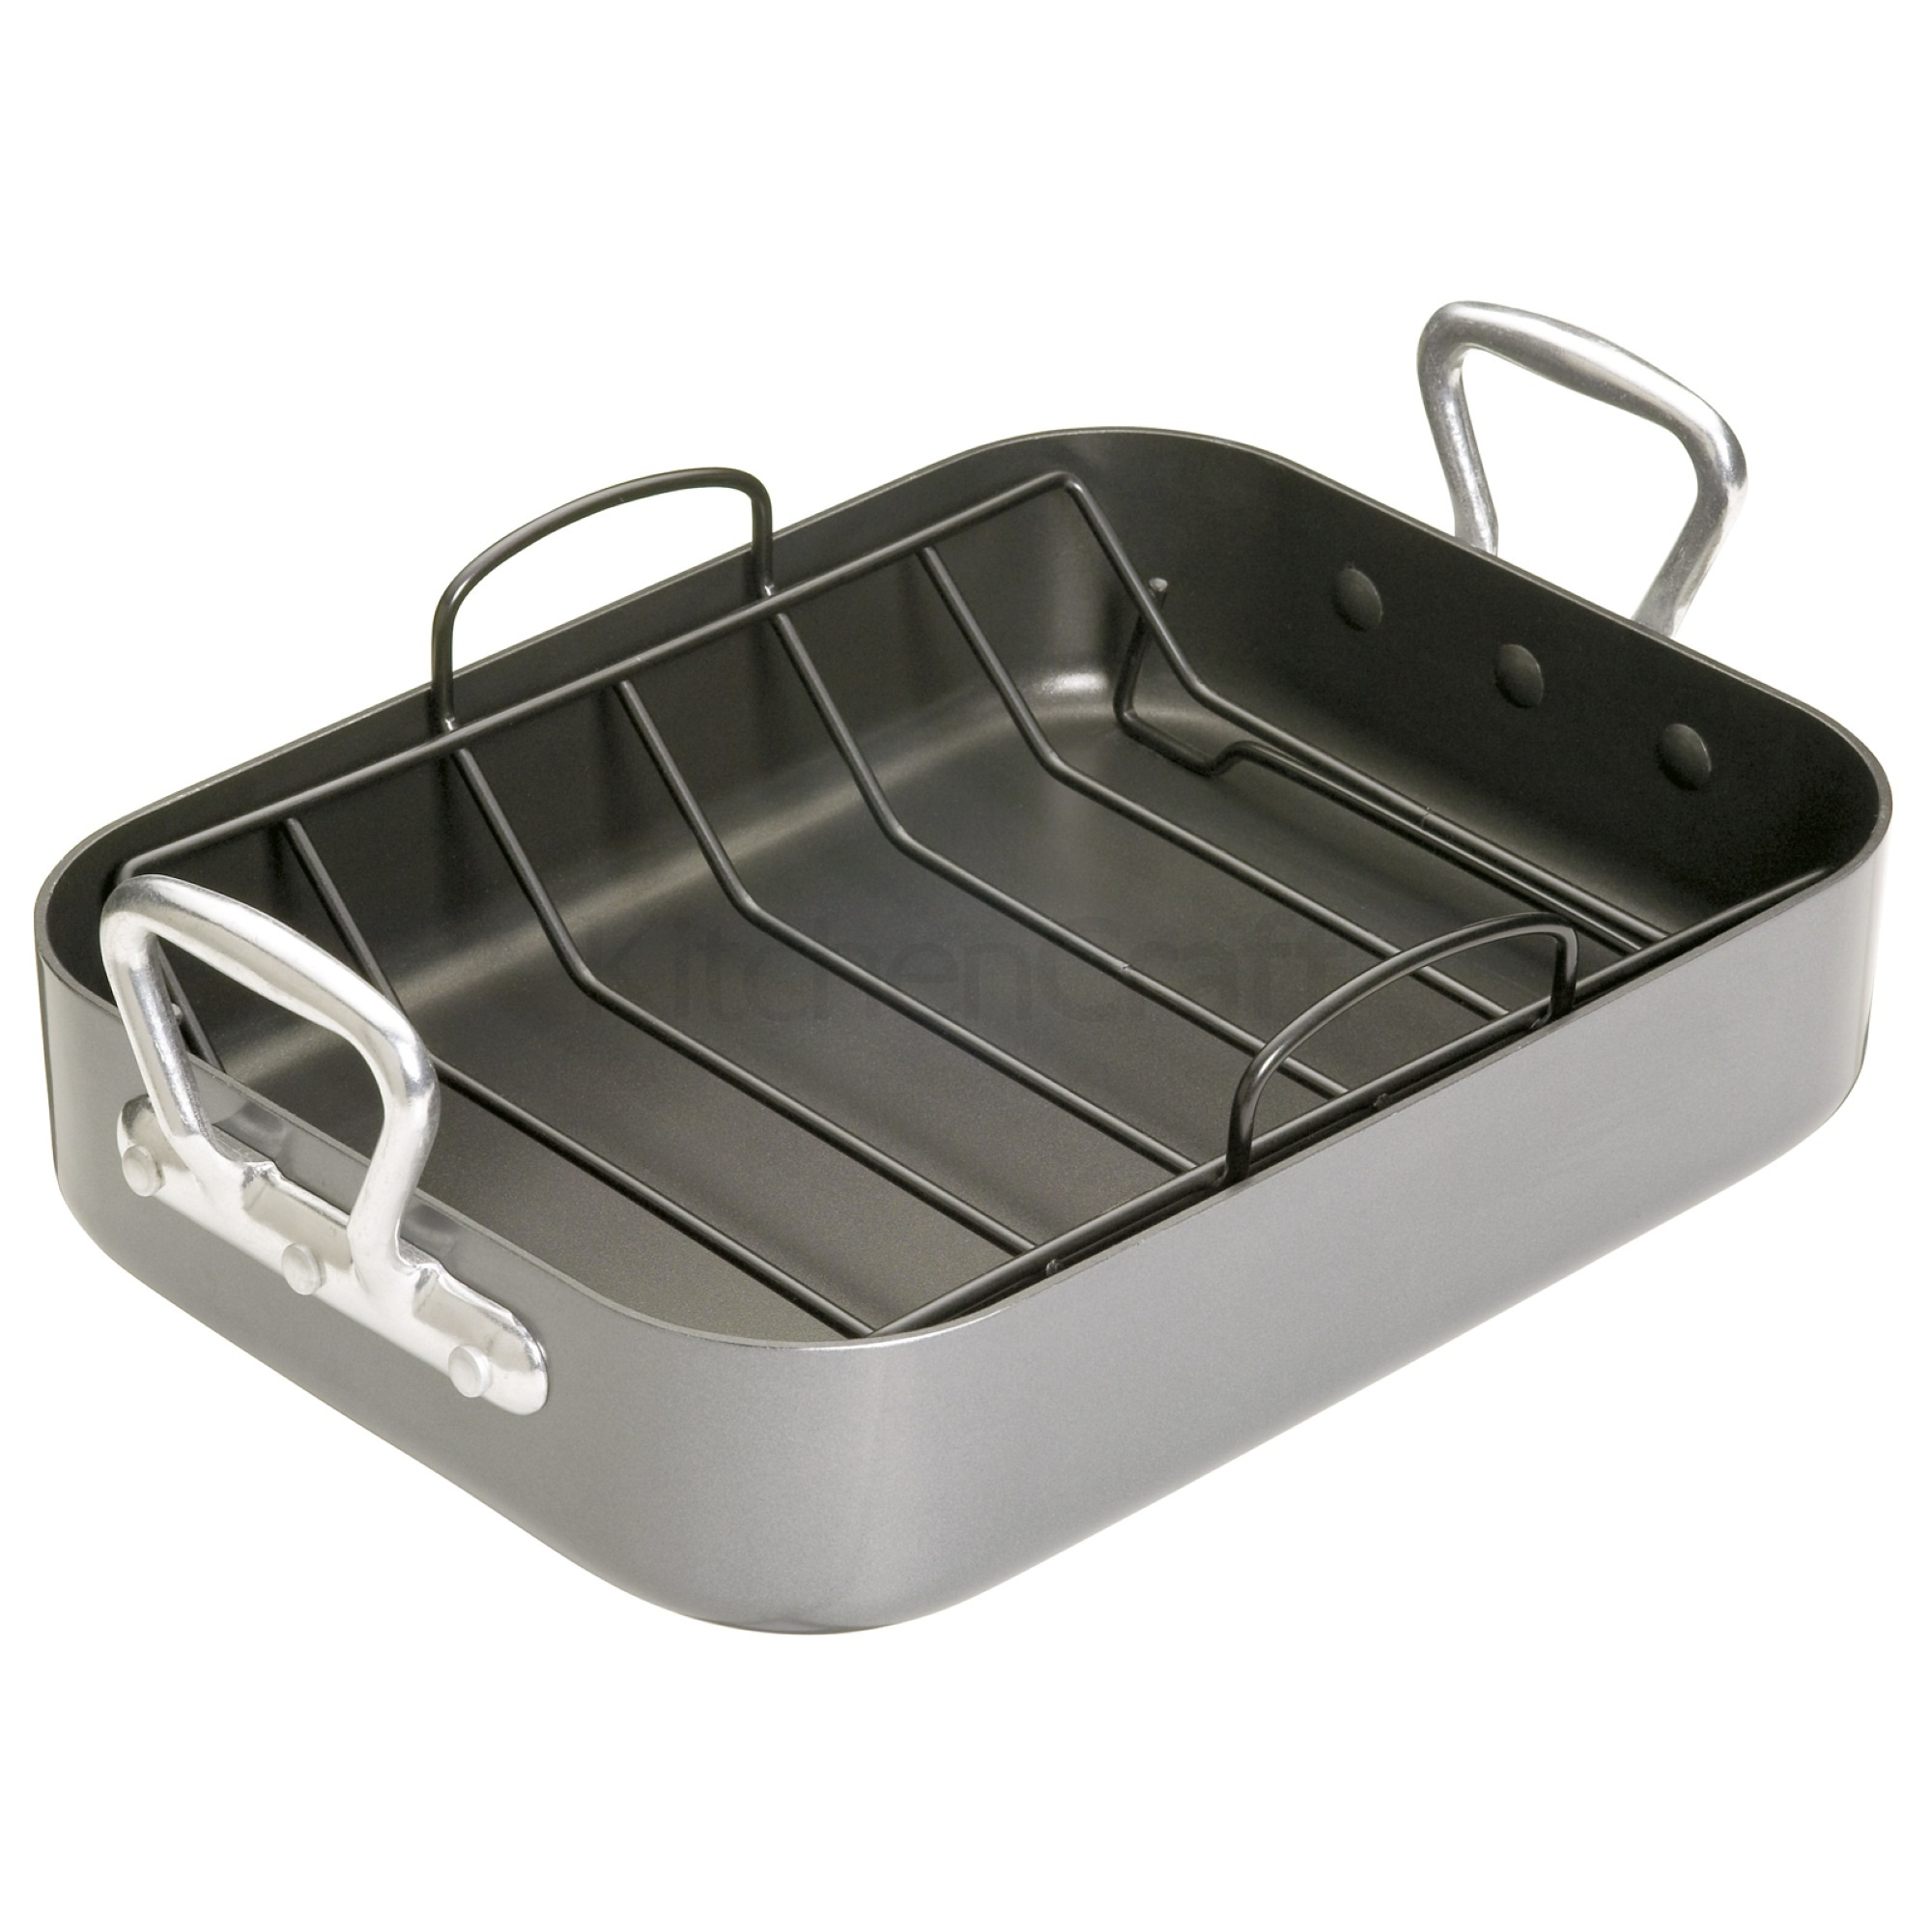 quart and rack oval ply roaster viking tri roasting with more induction multi lid cutlery